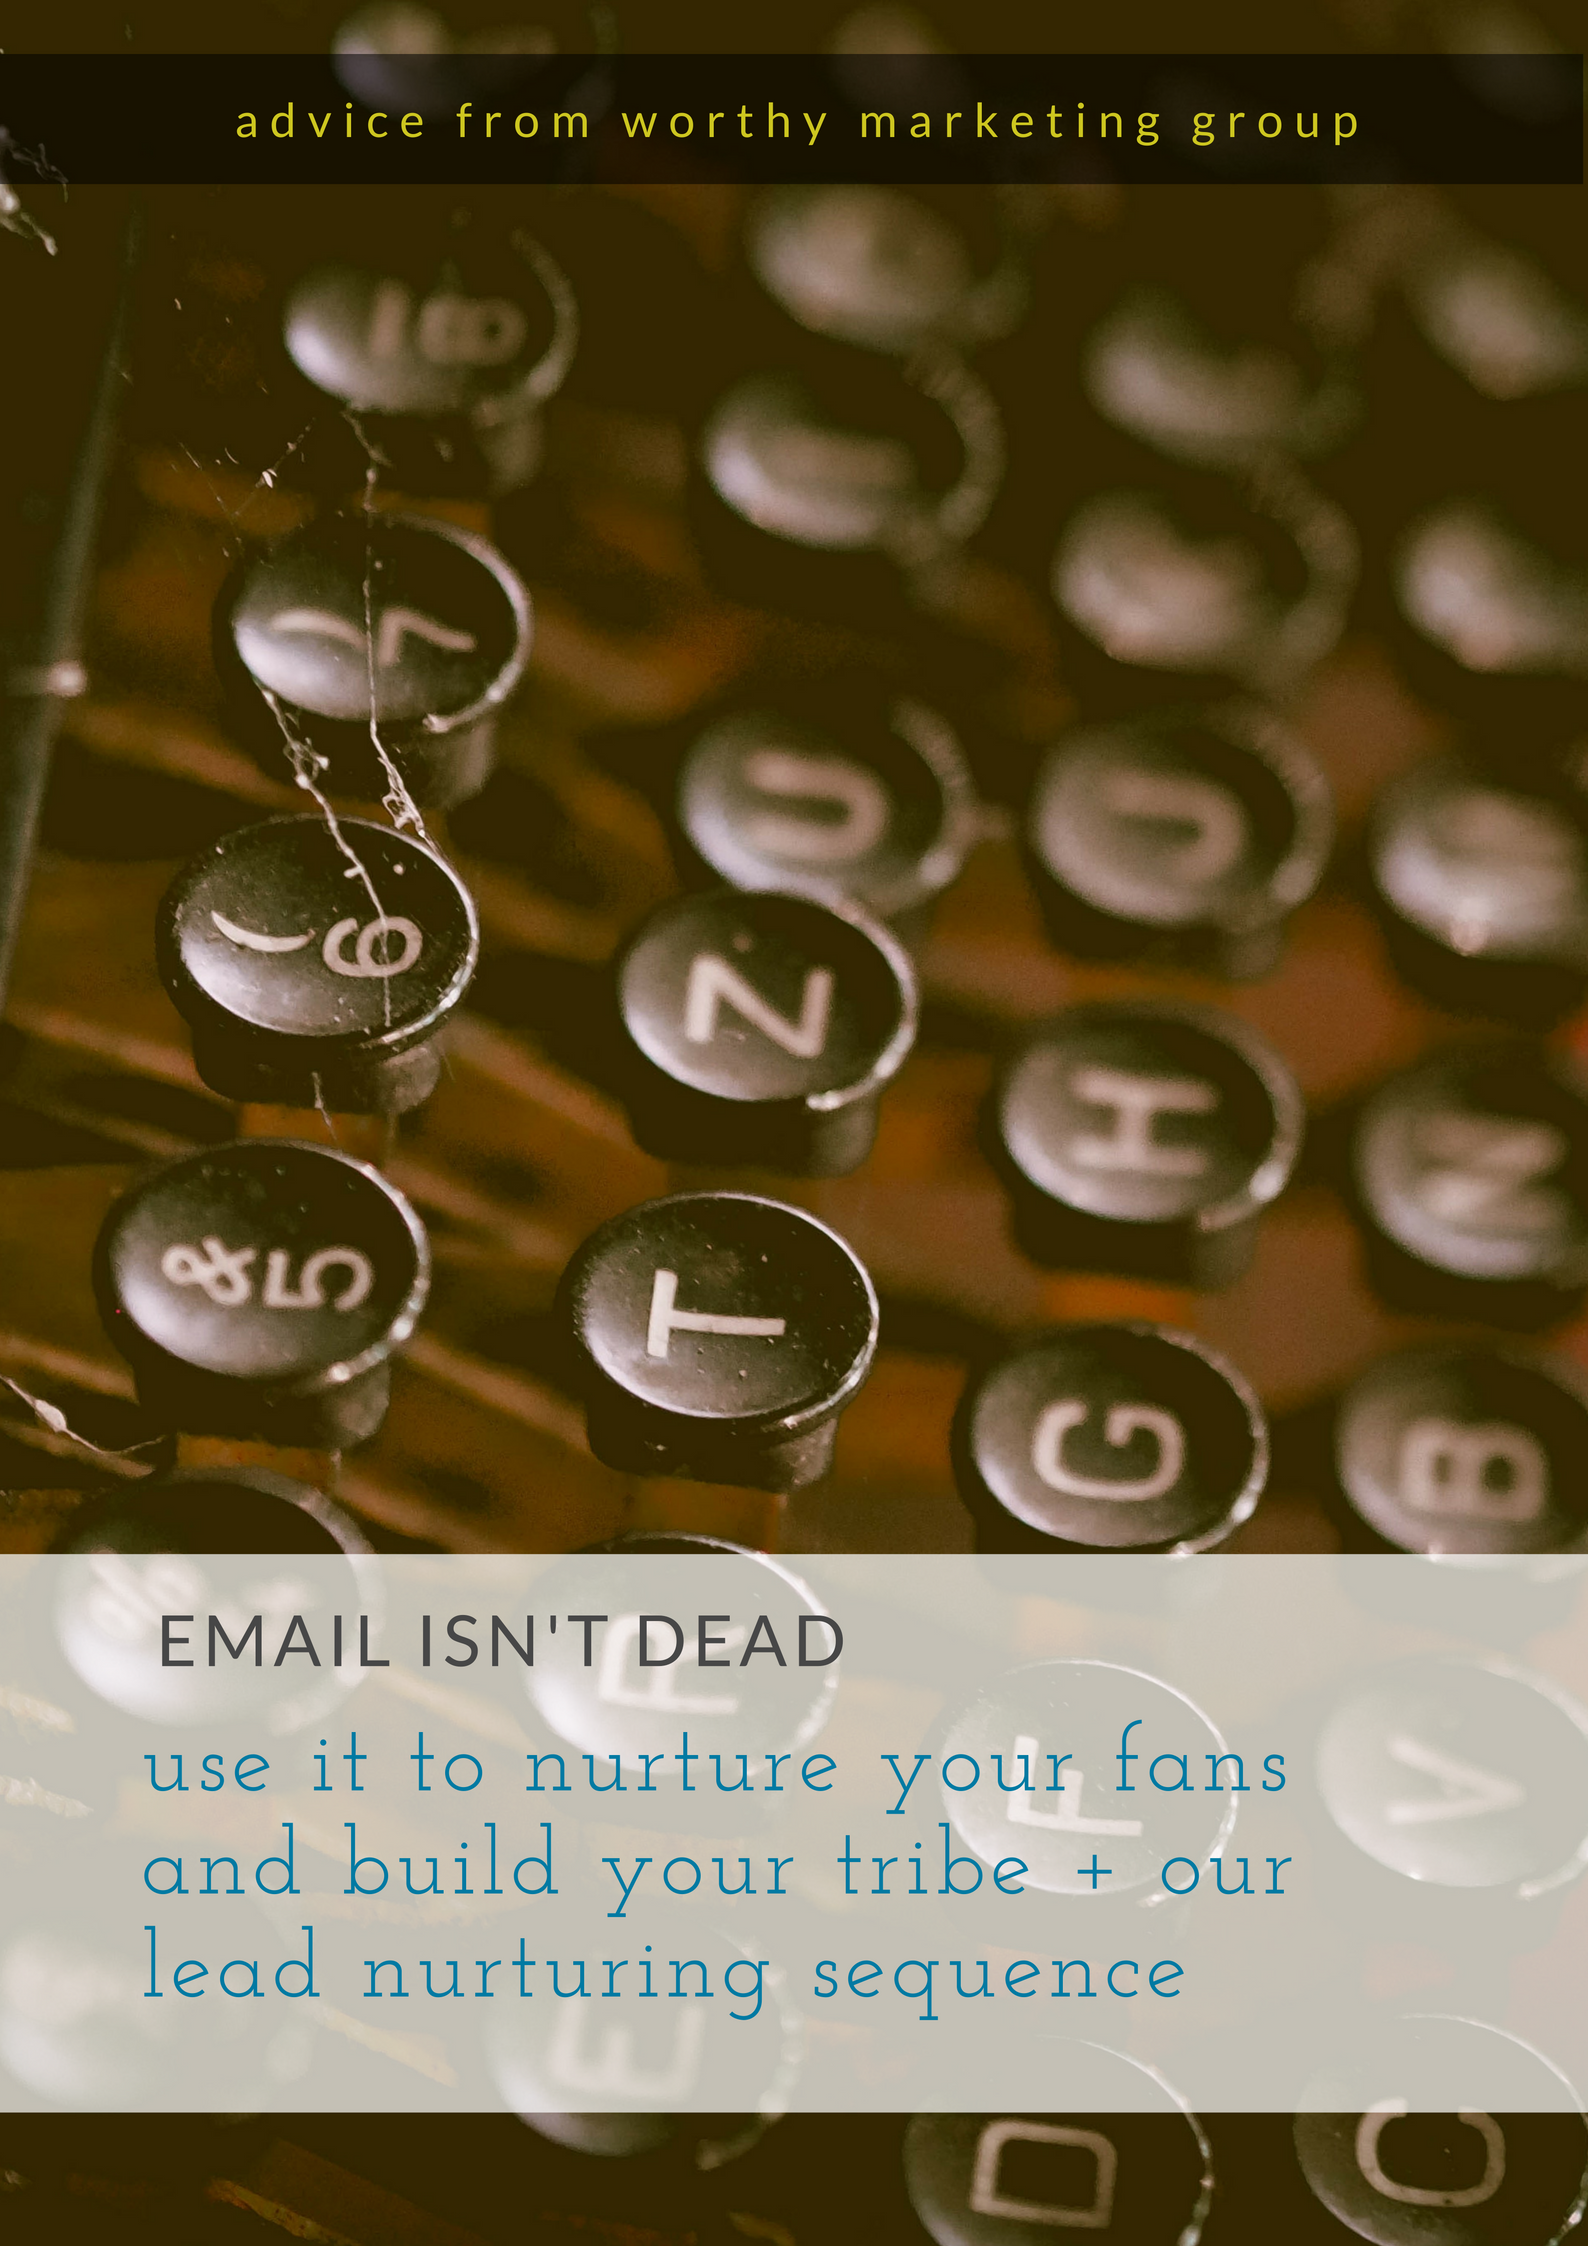 Email isn't Dead. It's alive and nurturing your tribe and fans. | The Worthy Marketing Group Blog